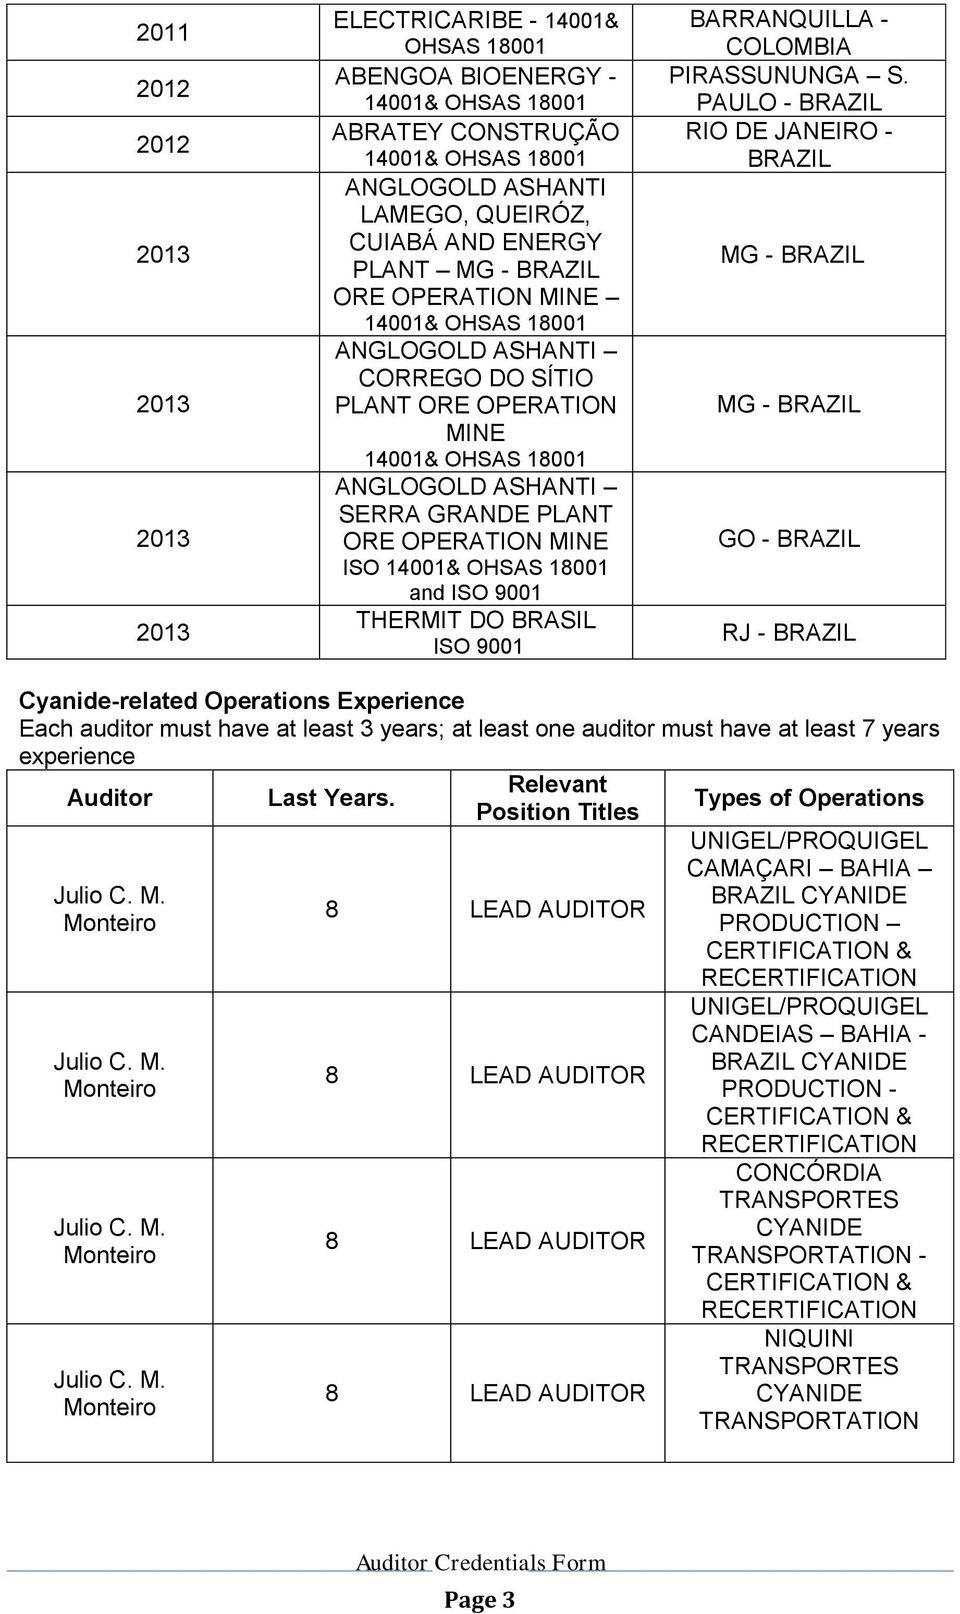 PAULO - RIO DE JANEIRO - MG - MG - GO - RJ - Cyanide-related Operations Experience Each auditor must have at least 3 years; at least one auditor must have at least 7 years experience